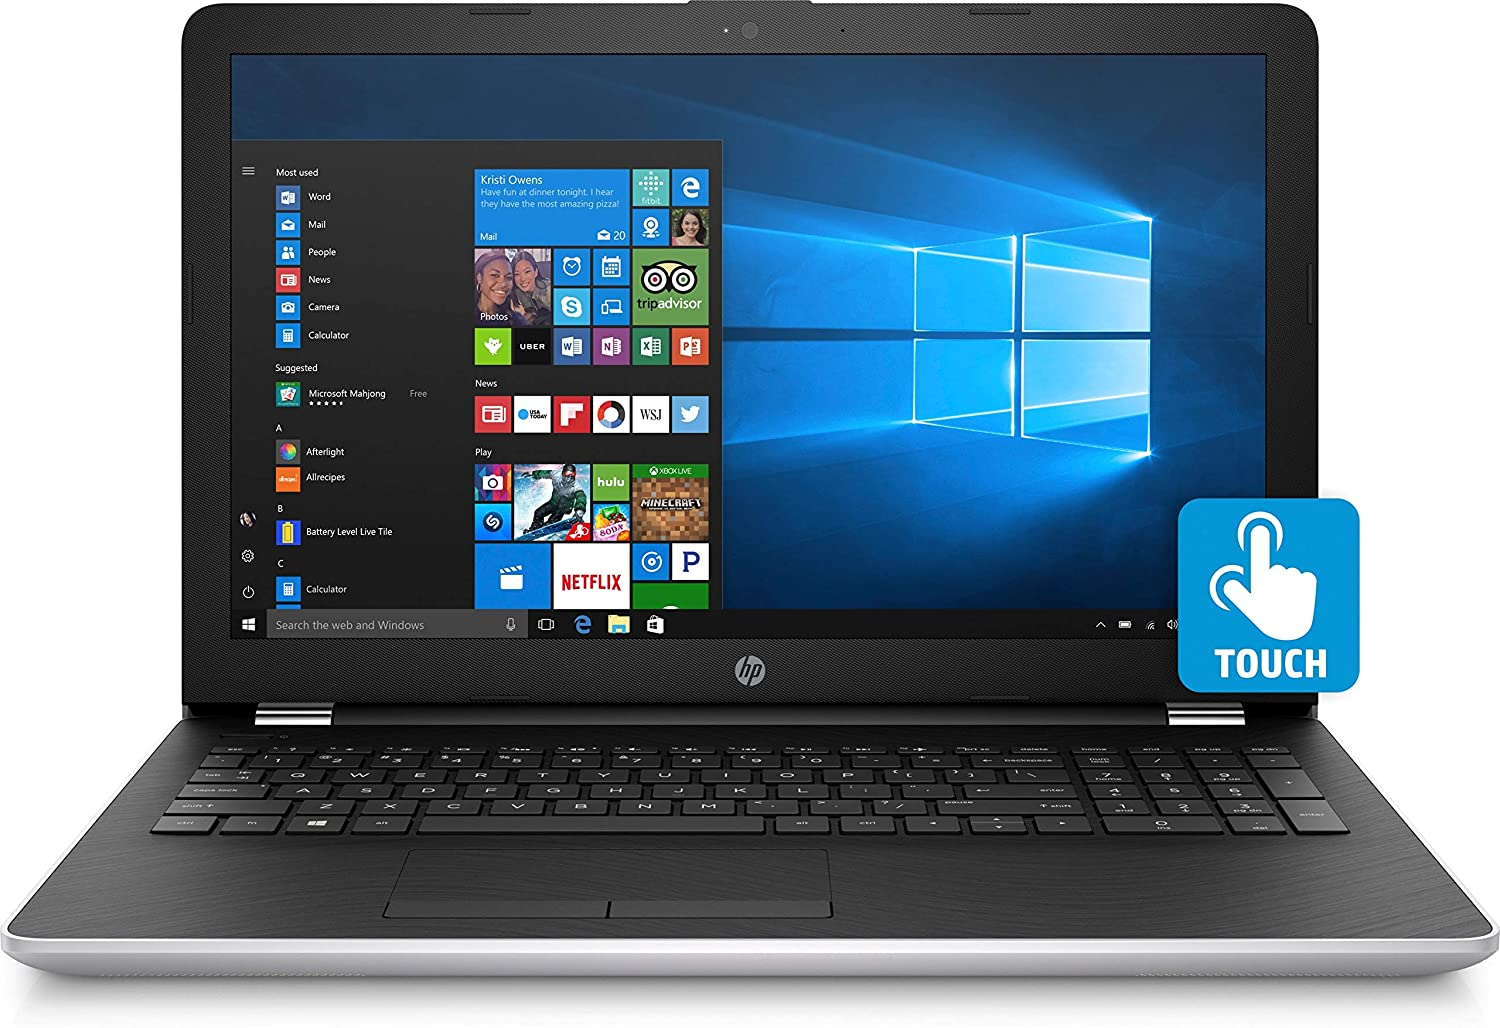 HP ENVY 13T-1100 CTO NOTEBOOK QUICK LAUNCH BUTTONS WINDOWS 7 X64 DRIVER DOWNLOAD